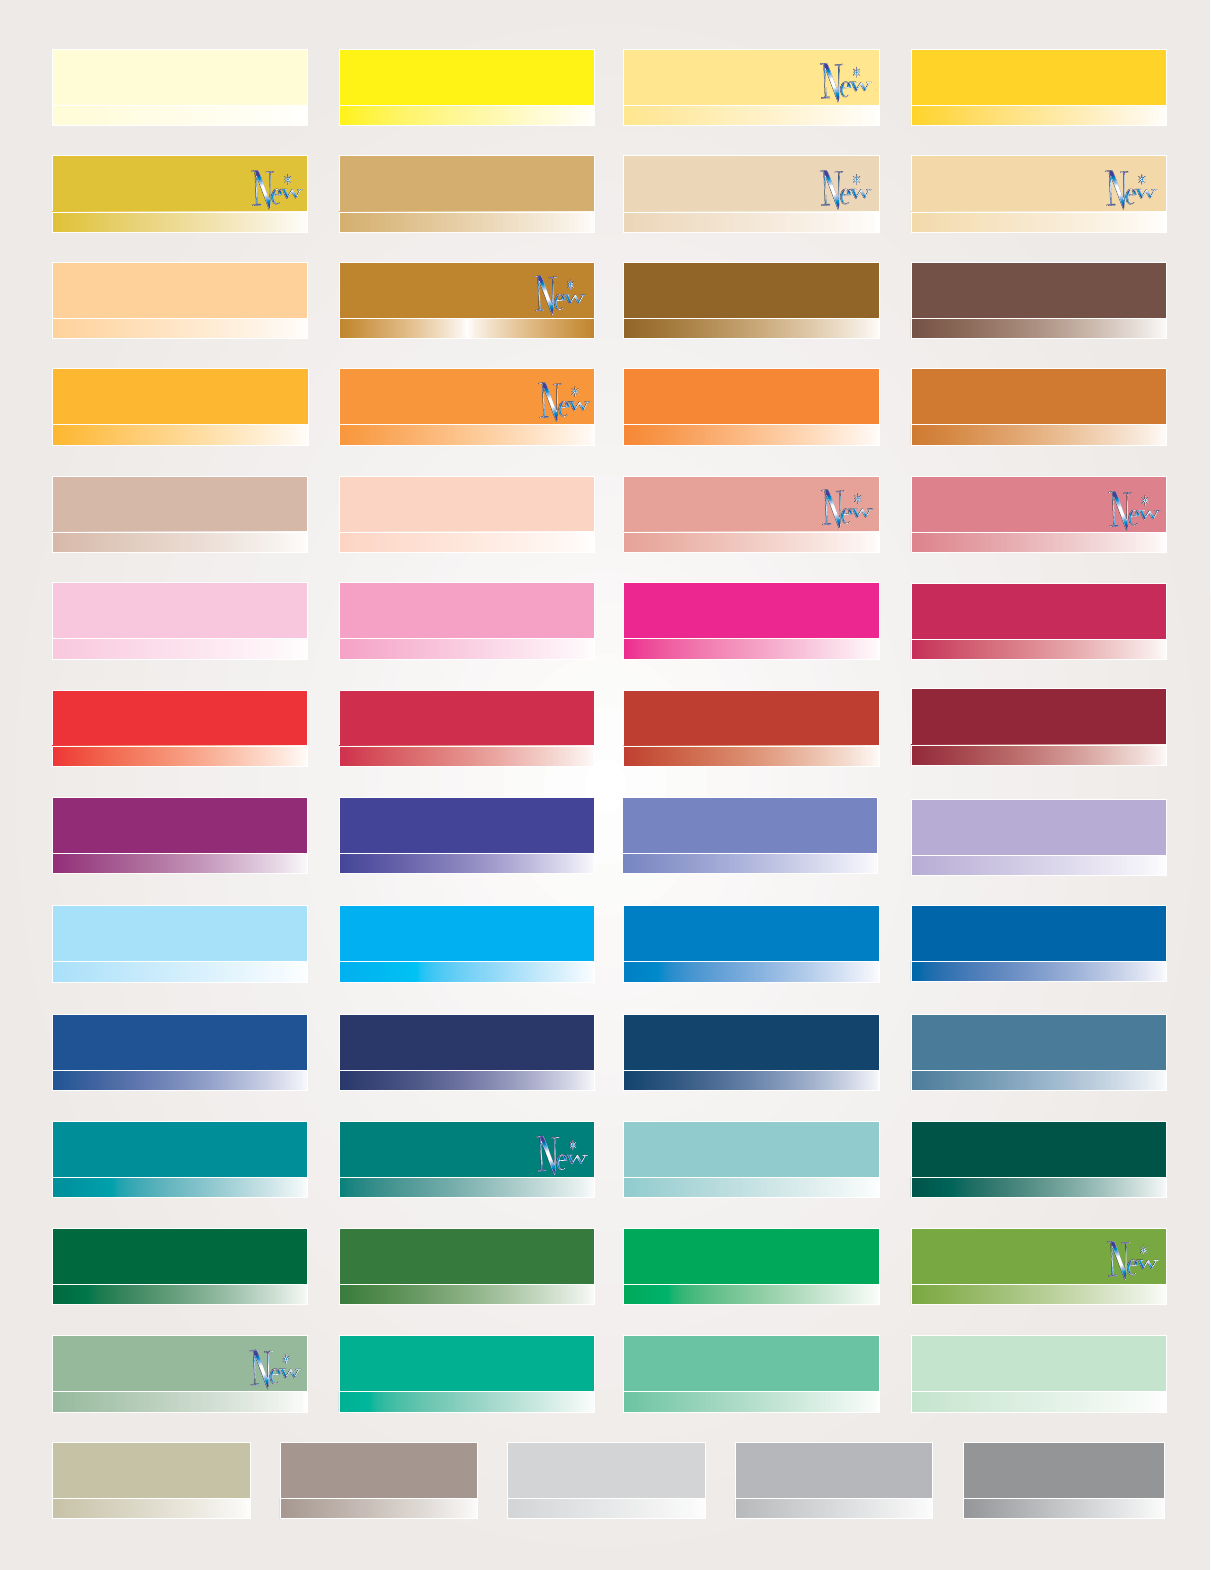 New Color Chart M20 Y20 K0 Pantone 169 200 Salmon C0 M28 Y0 K0 Pantone 217 152 Flamingo Pink C0 M48 Y0 K0 Pantone 223 125 Magenta C0 M100 Y0 K0 New Color Chart Find a new color scheme from words. color chart m20 y20 k0 pantone 169